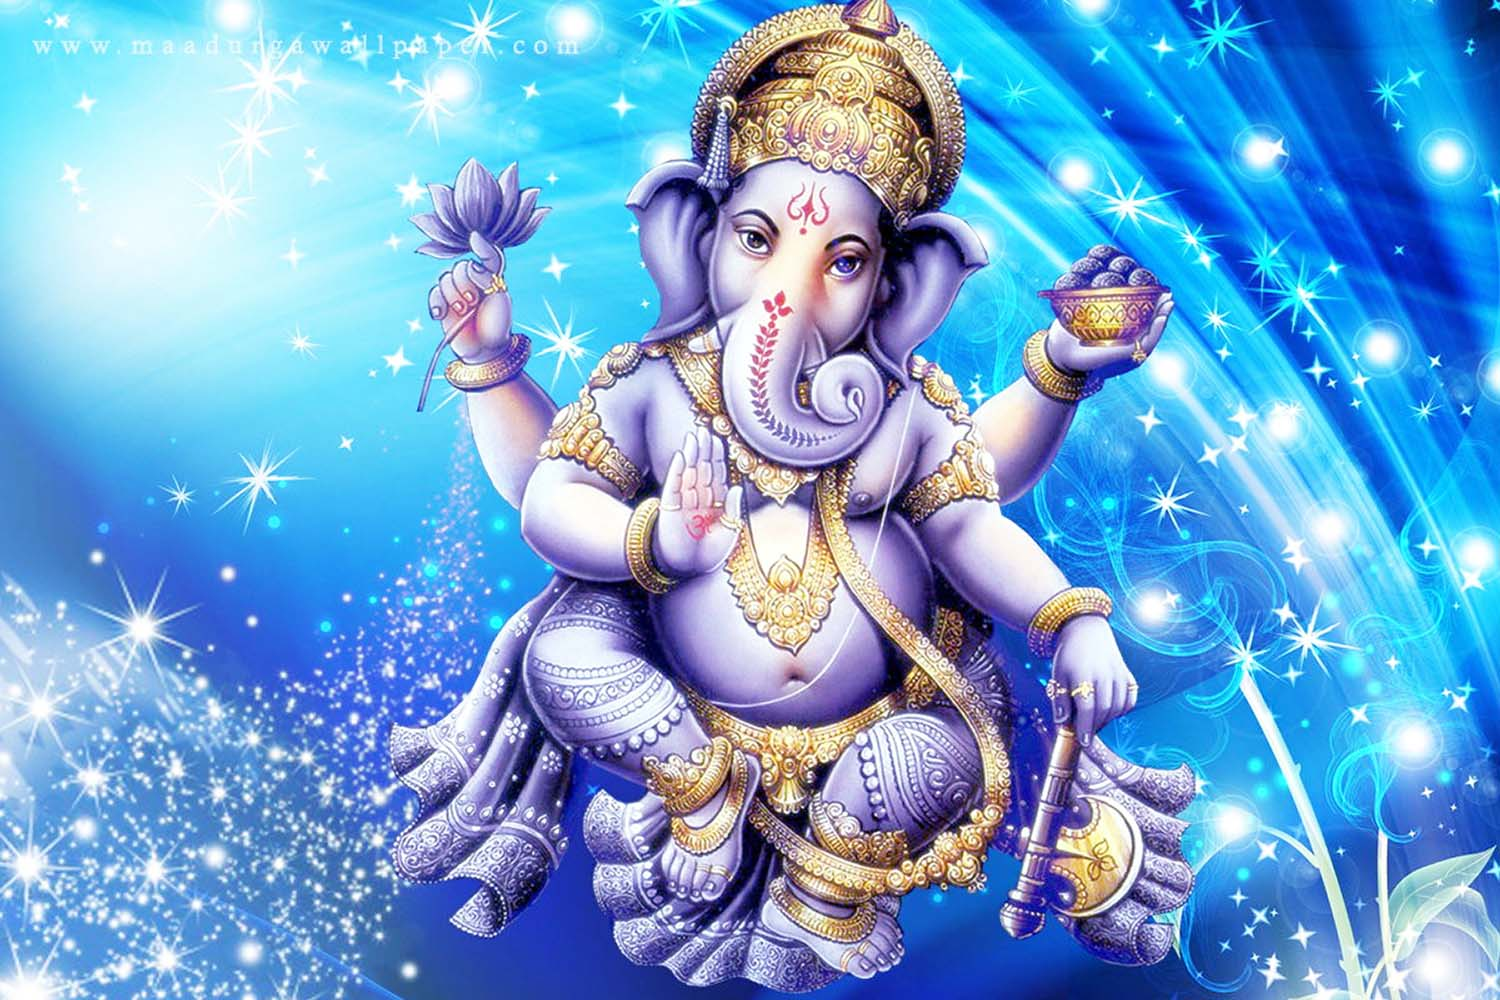 Awesome Vinayak wallpaper in blue background!